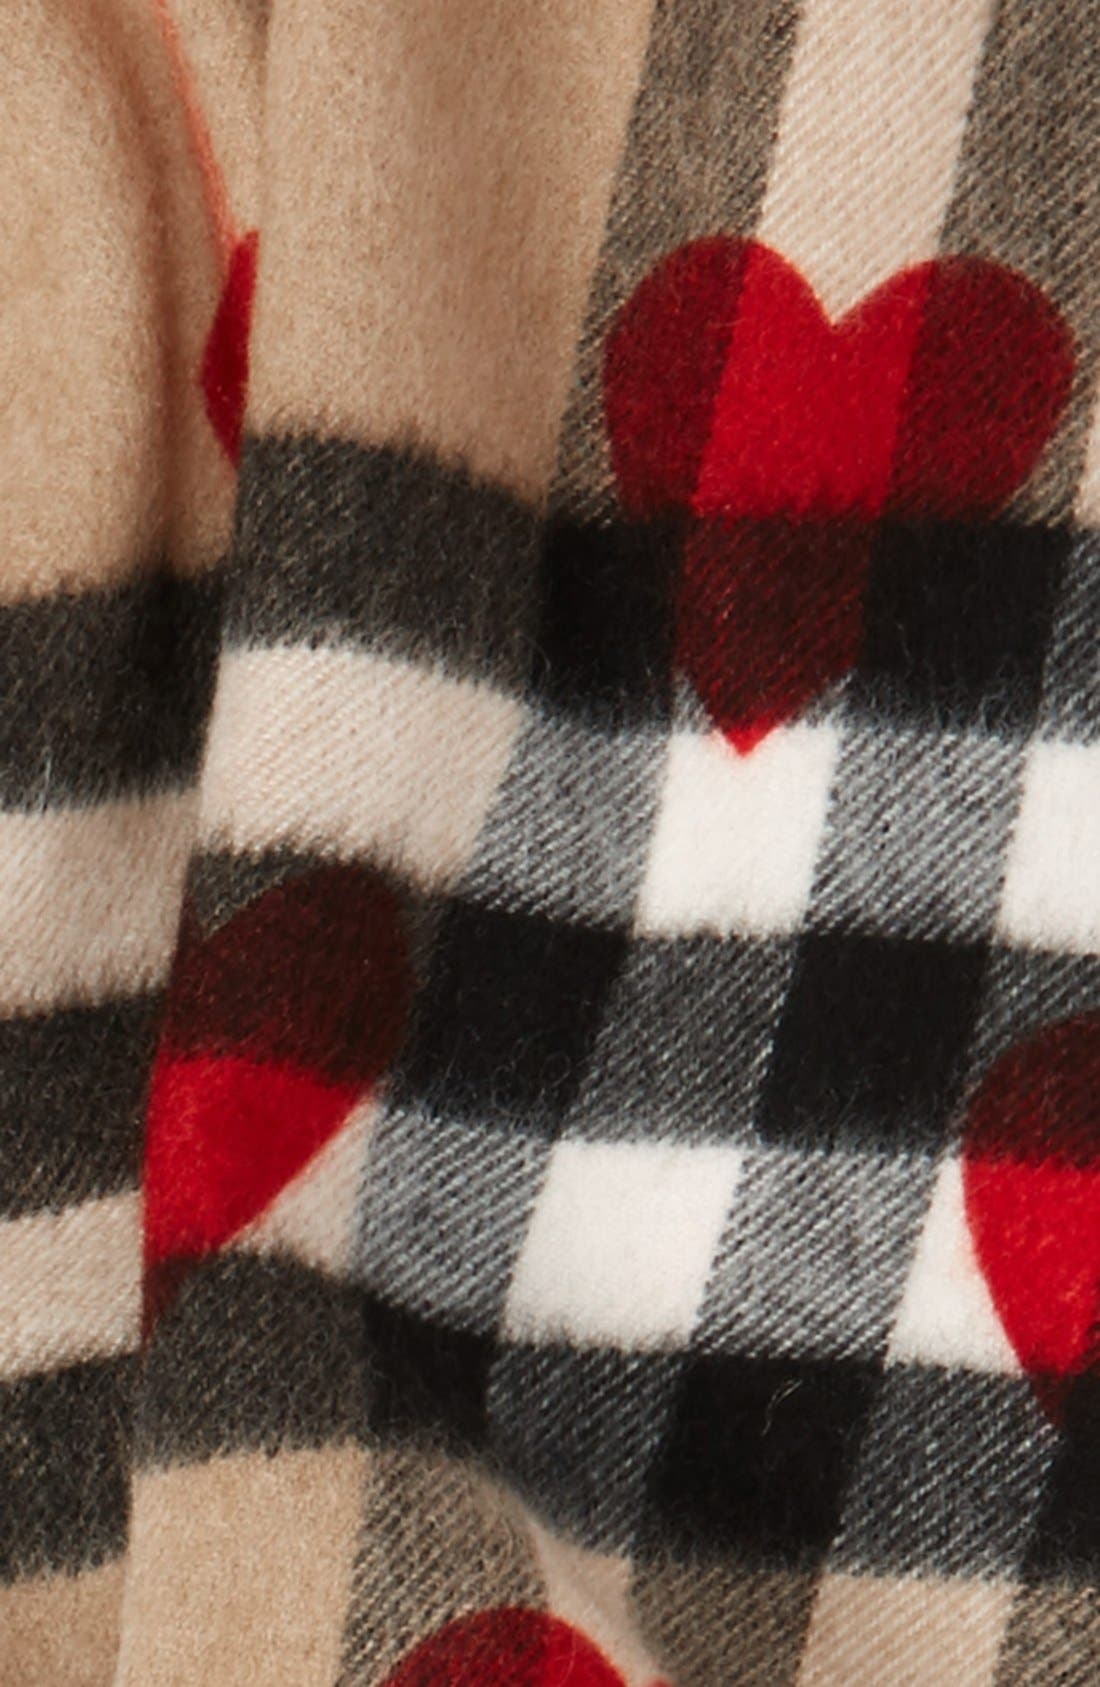 Heart & Giant Check Fringed Cashmere Scarf,                             Alternate thumbnail 3, color,                             Parade Red